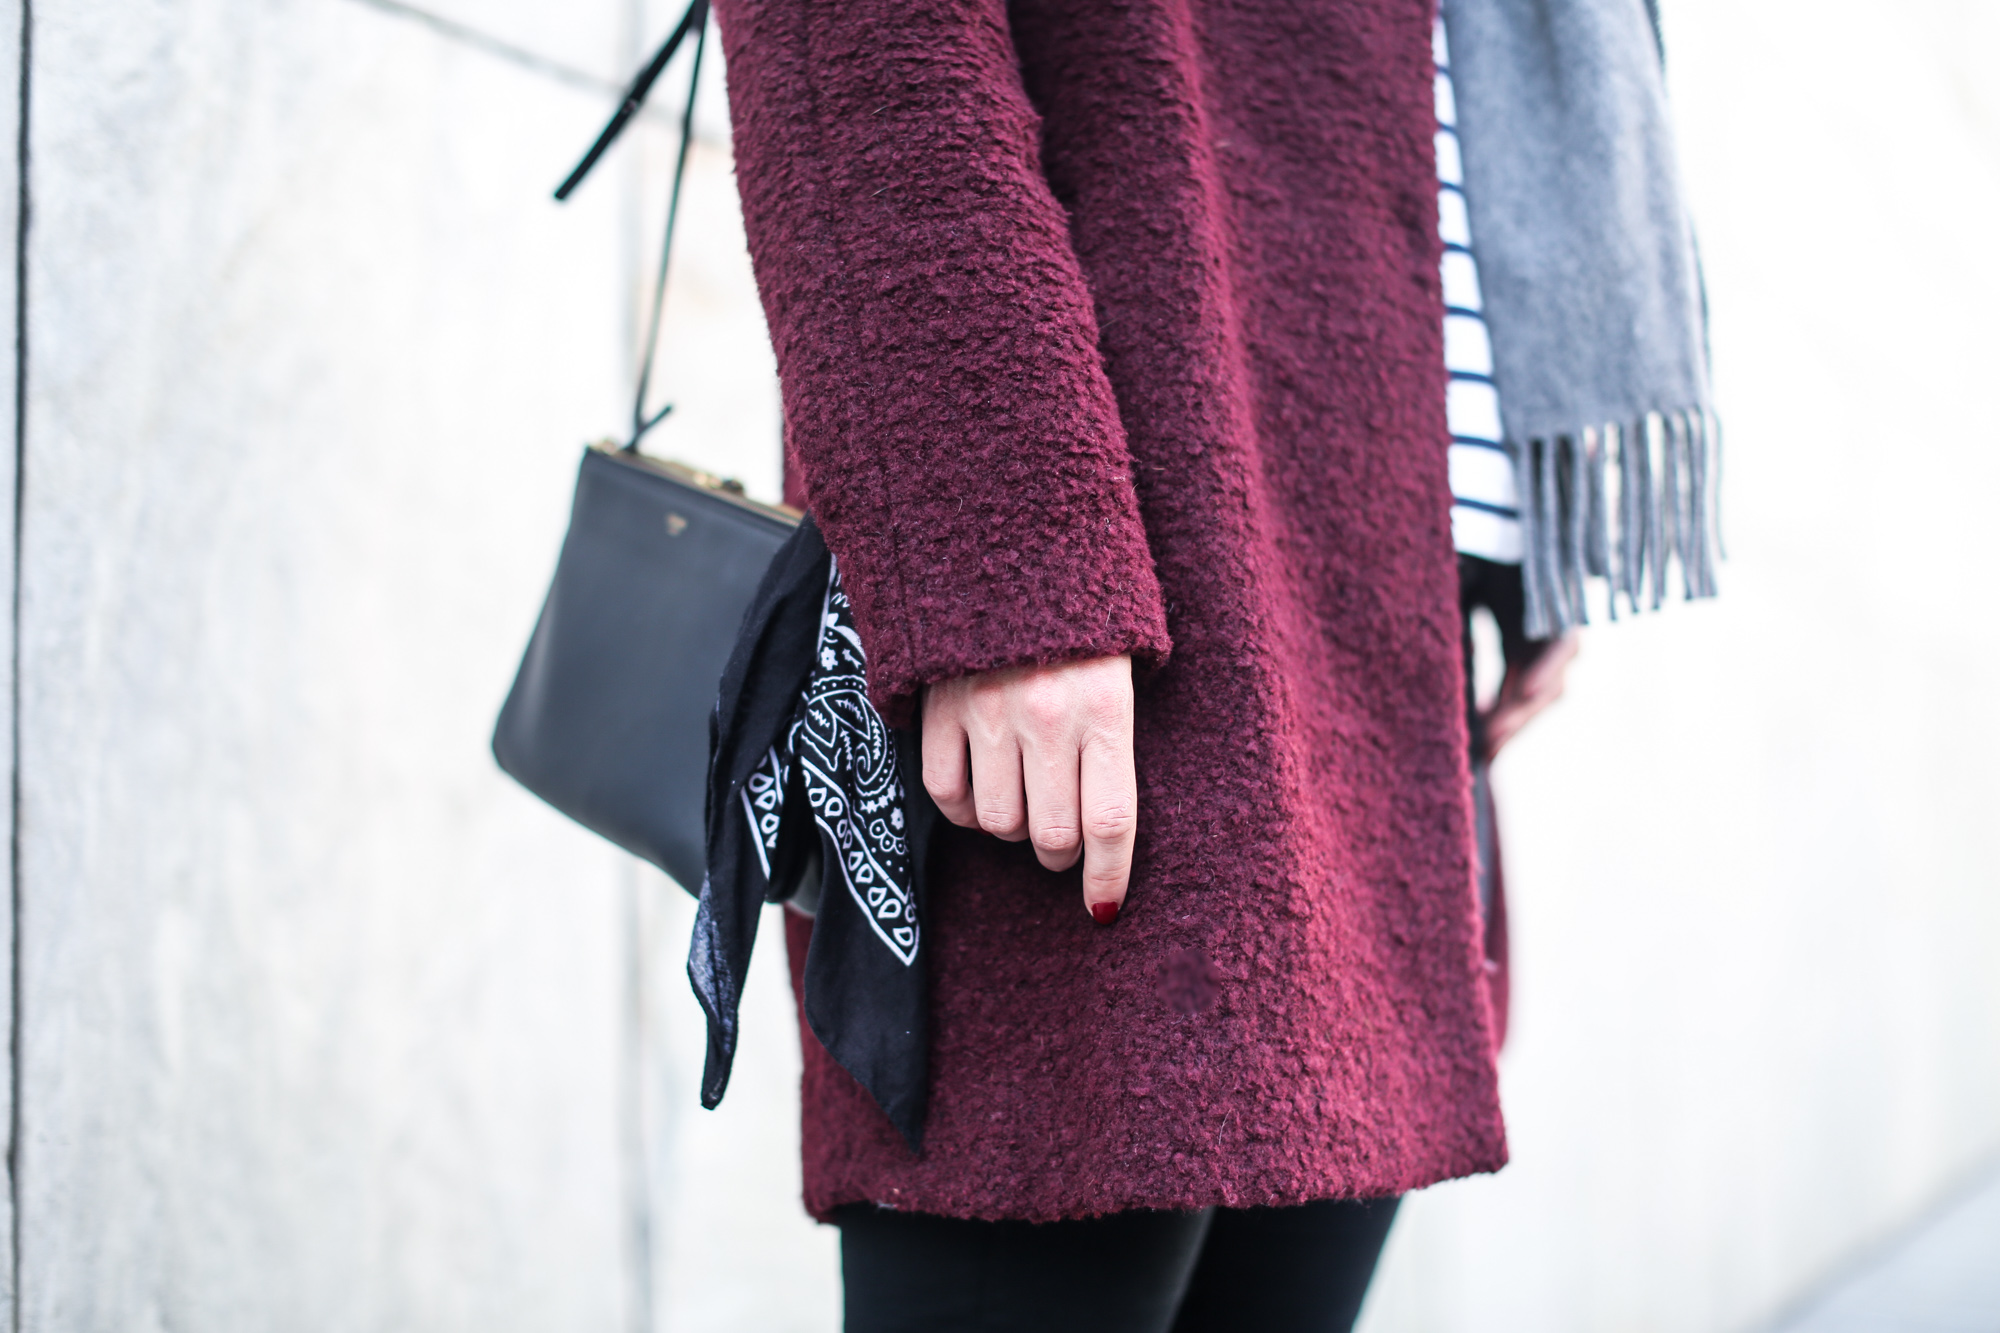 clochet_streetstyle_artemisia_leather_platform_brogues_acnestudios_canada_wool_scarf-8